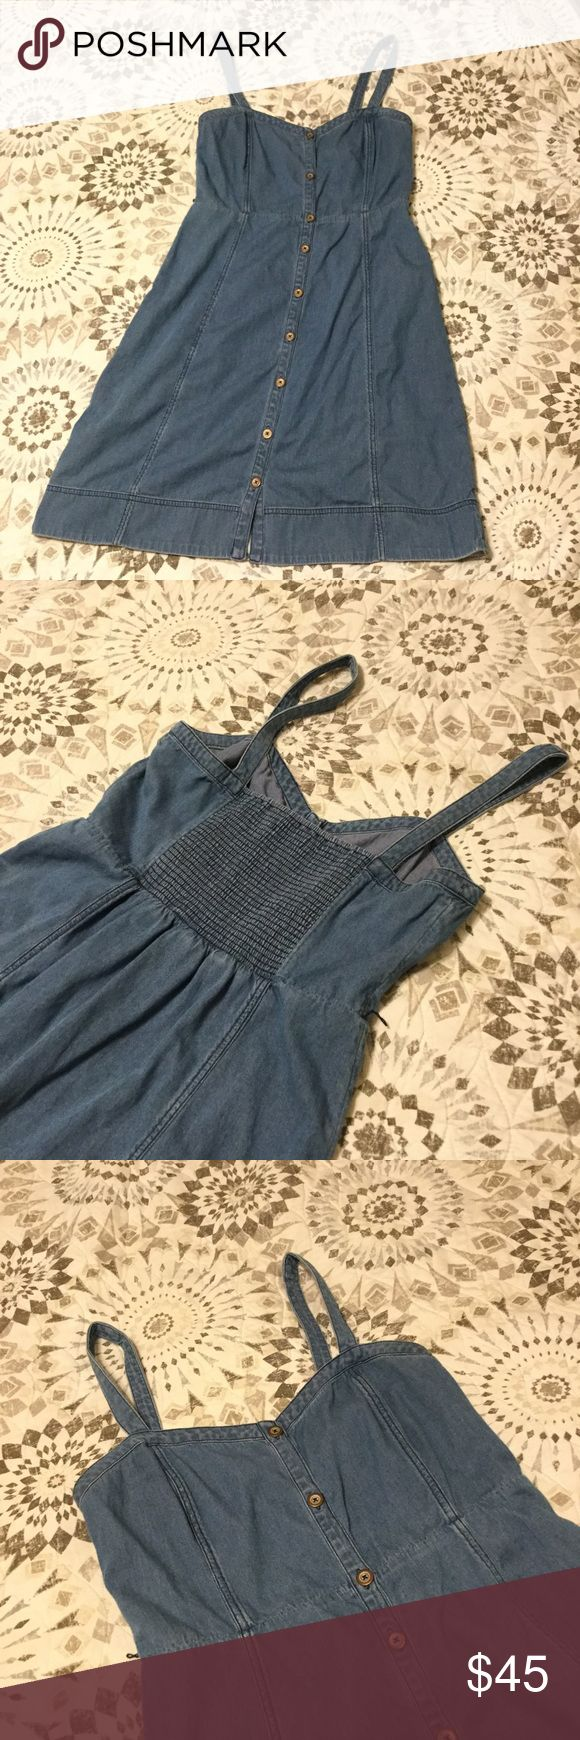 💠Anthropologie Versatile Denim Dress💠 Is this pretty lil jean dress looking for a sassy pair of cowgirl boots? Or a favorite band tee and bangles for an edgy look? This amazing dress is from Anthropologie and is incredibly versatile. The smocked back on this dress makes it fitted to perfection. True to size 10, listed as 12, but fits slightly larger w/ the stretchy back. Please: 🚫 No Trades 🚫 No Lowballing 🚫 No Offers Through Comments ✅ Do Make Offers Through Offer Button ✅ Do Ask Any…